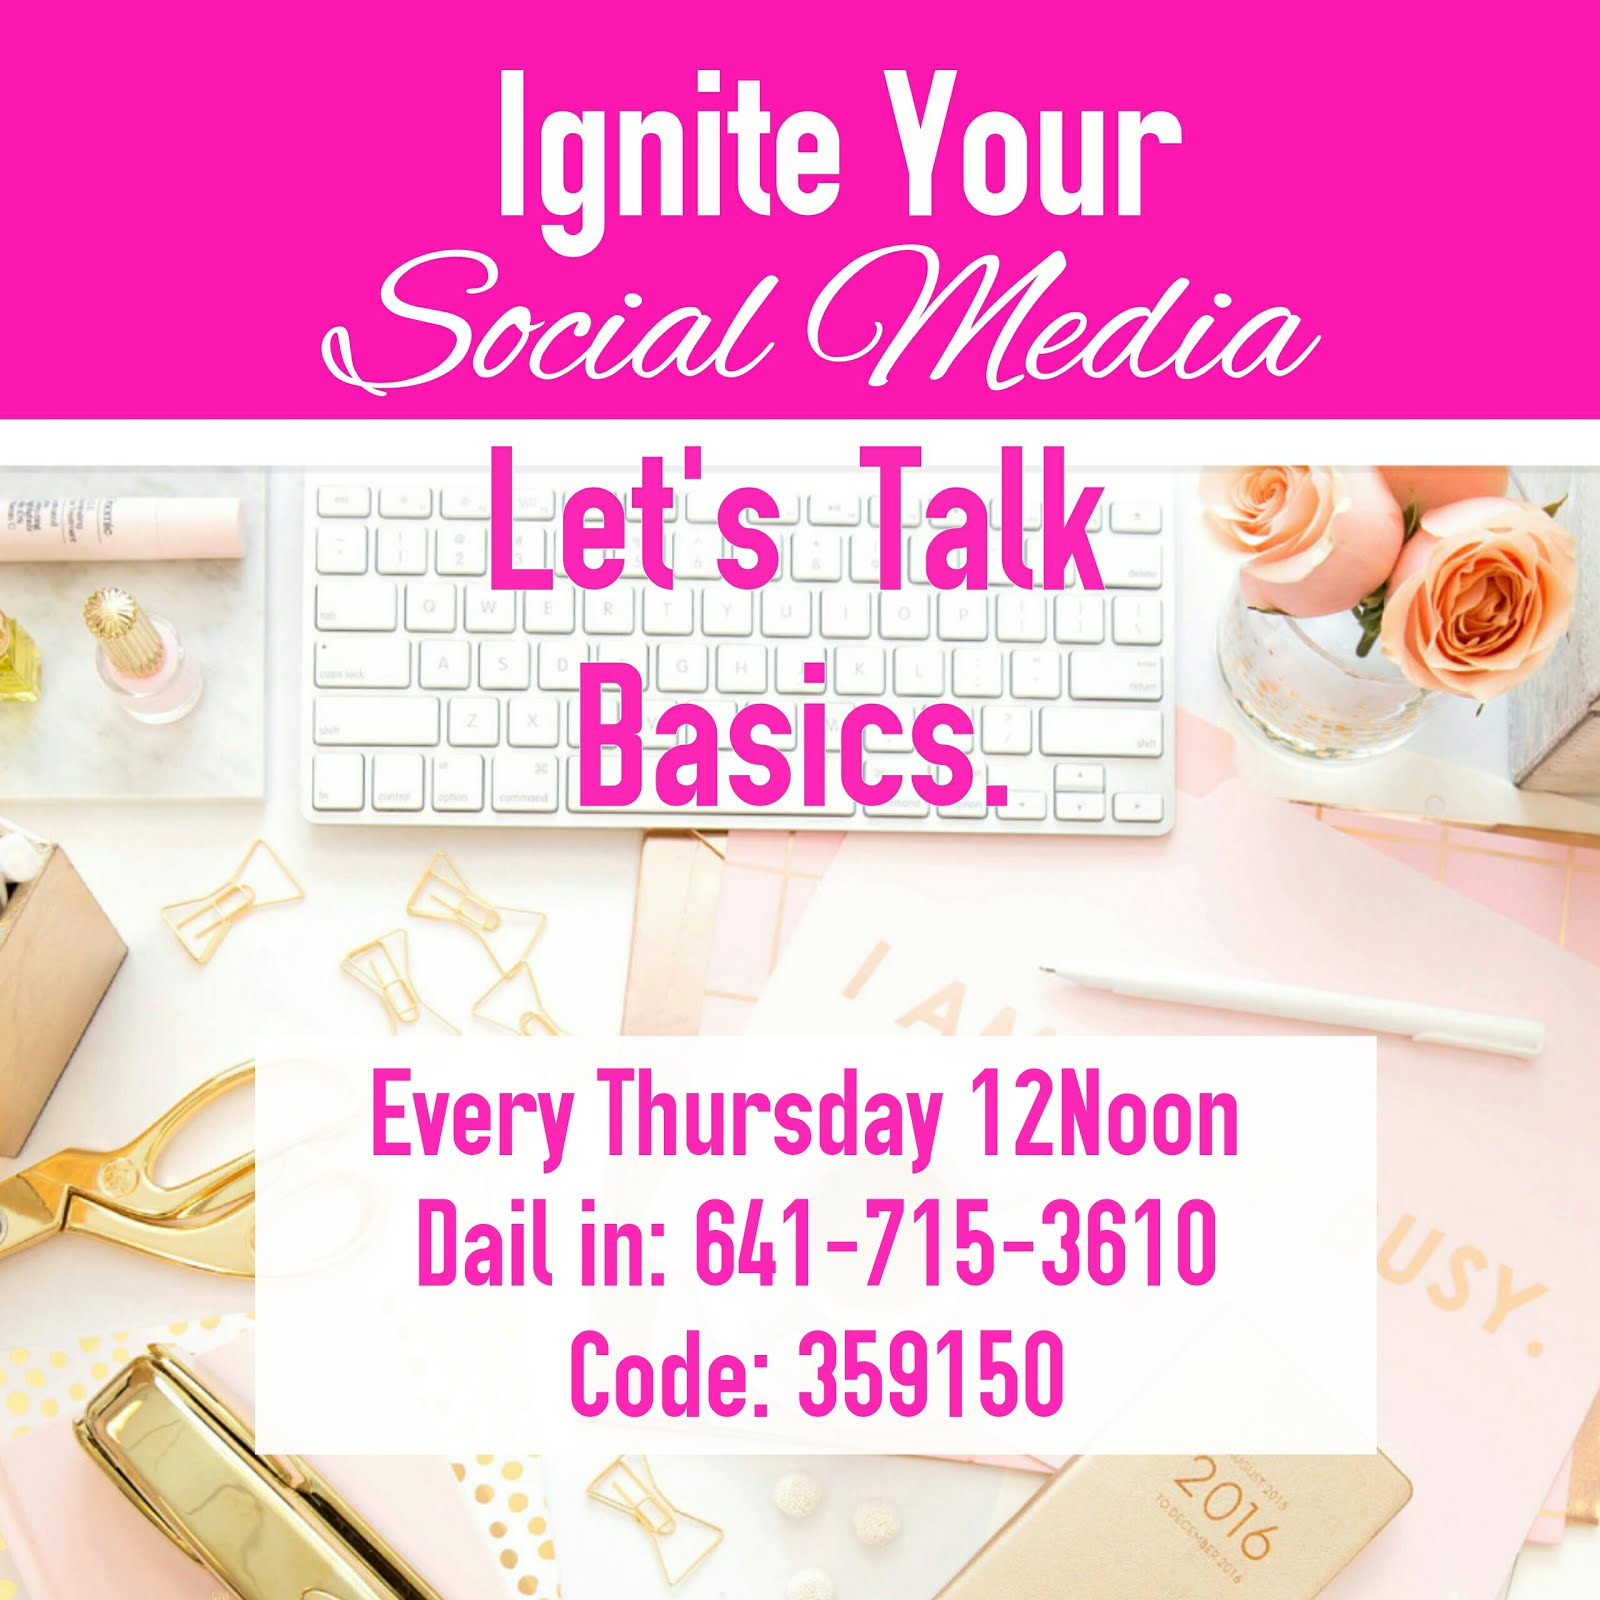 IGNITE YOUR SOCIAL MEDIA..JOIN THE CALL